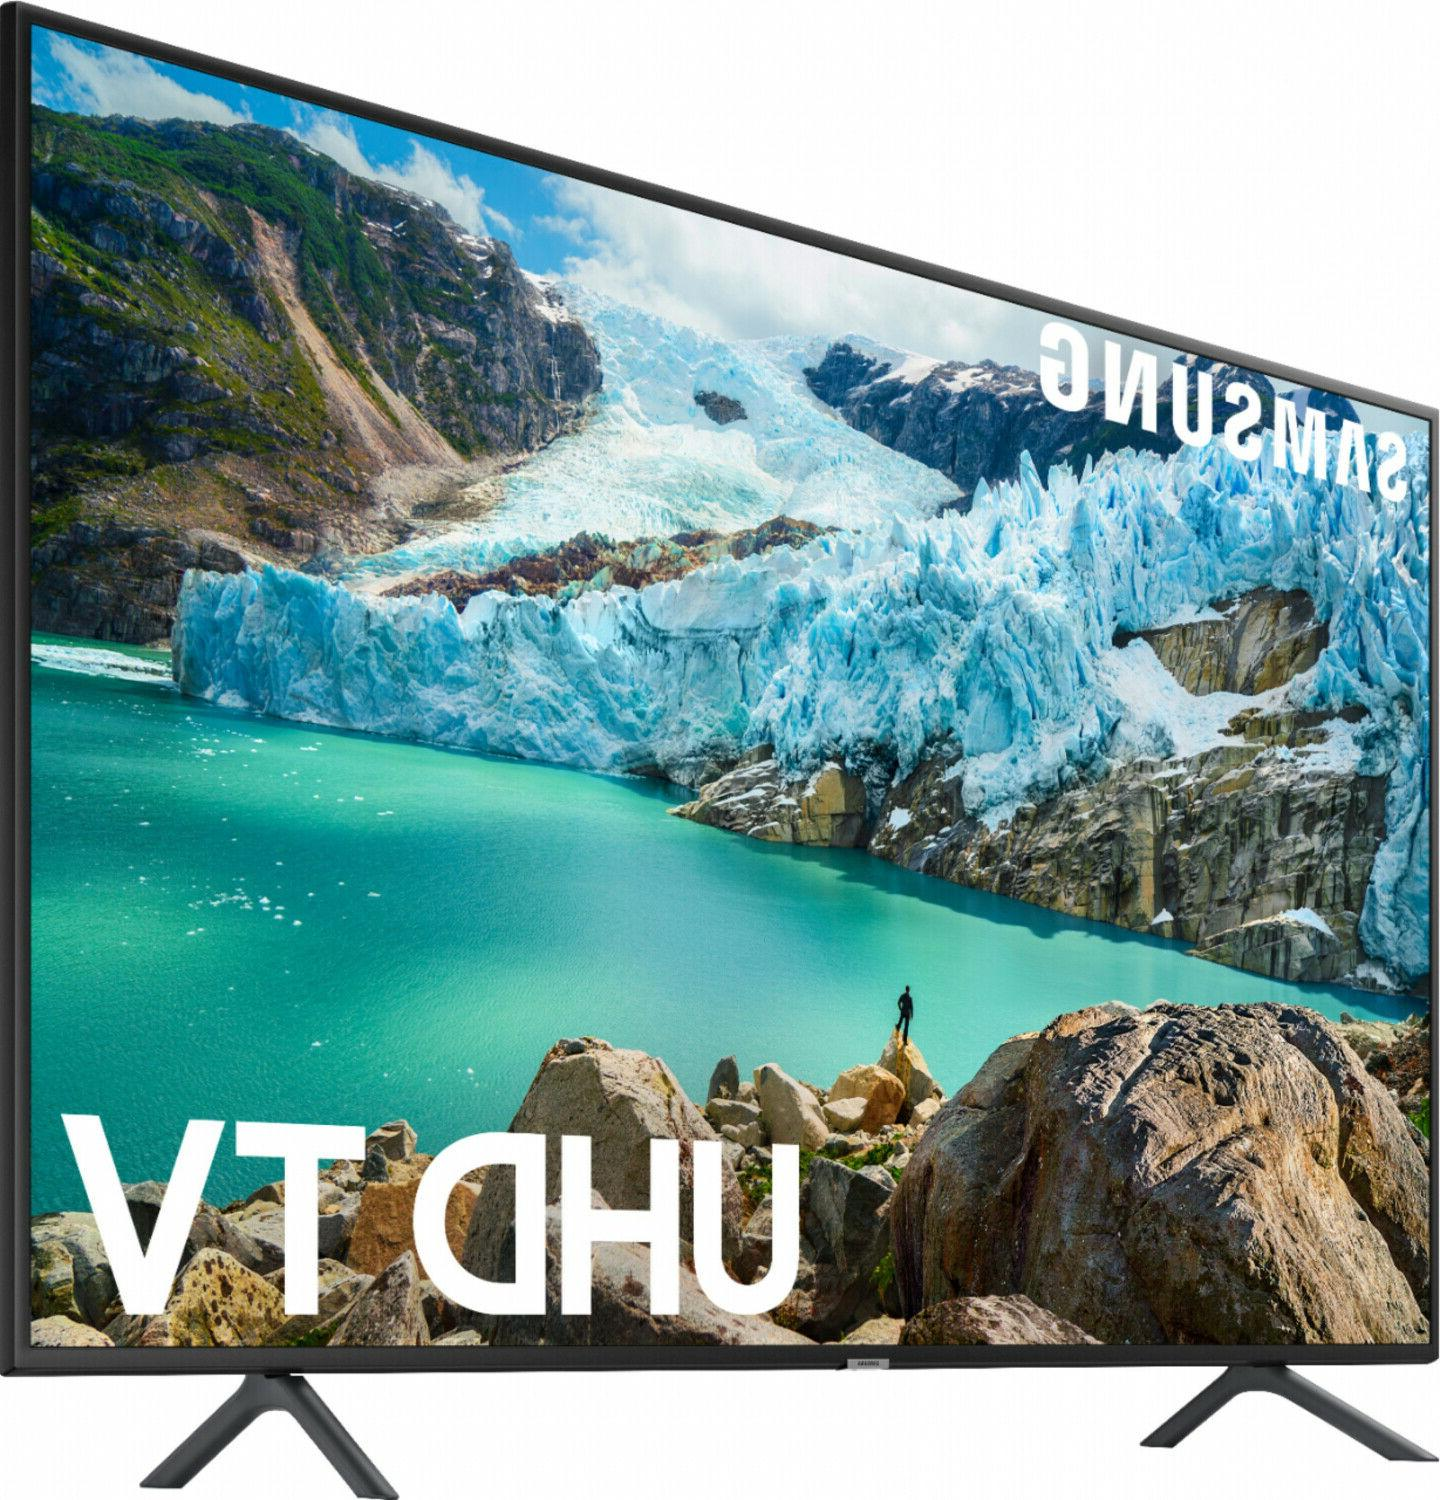 Samsung Smart TV 65 inch UHD TV with Built